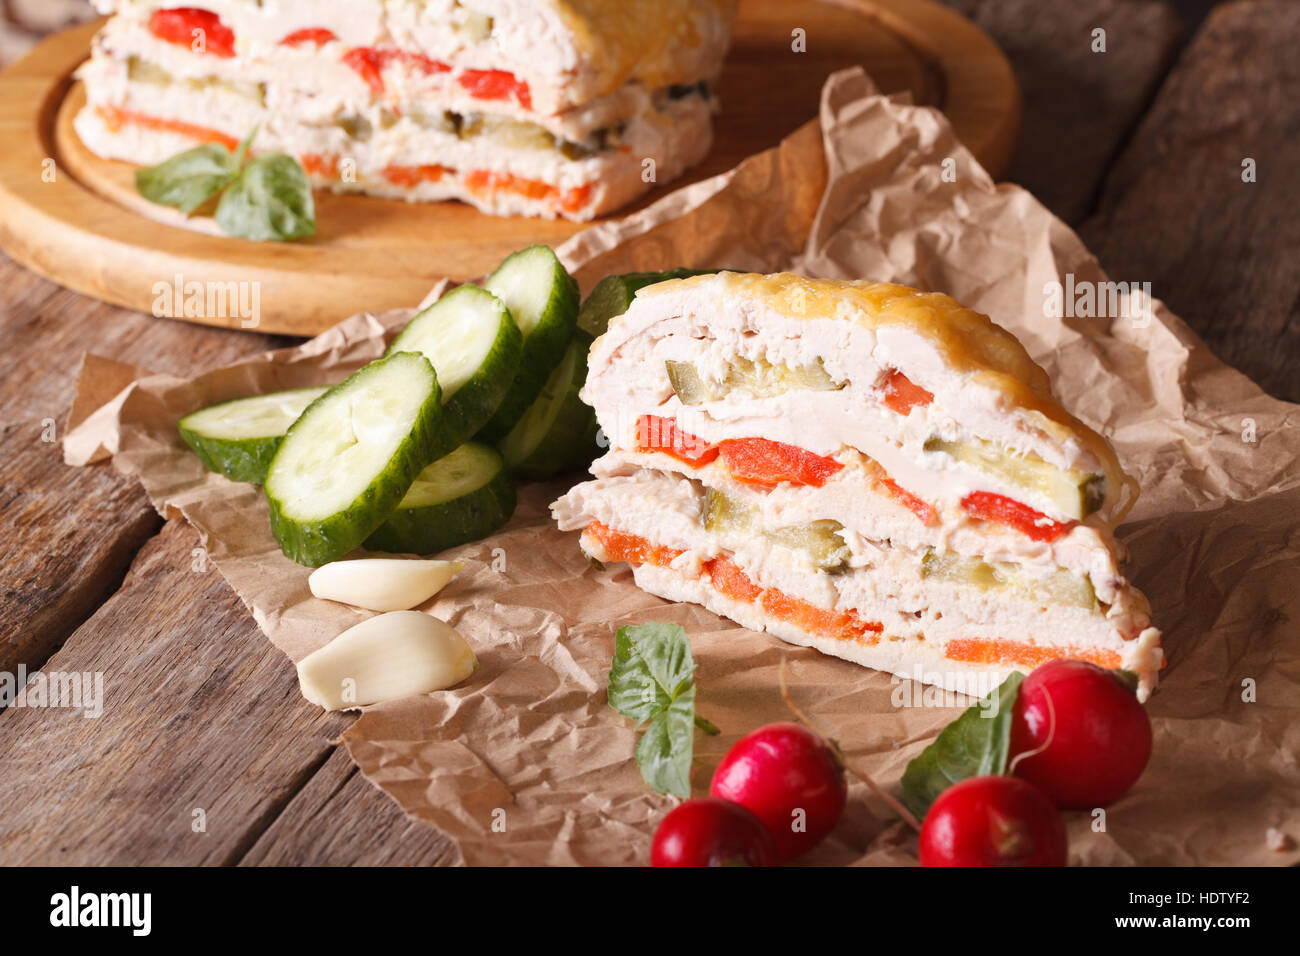 Piece Chicken casserole with vegetables and cheese on paper. horizontal - Stock Image